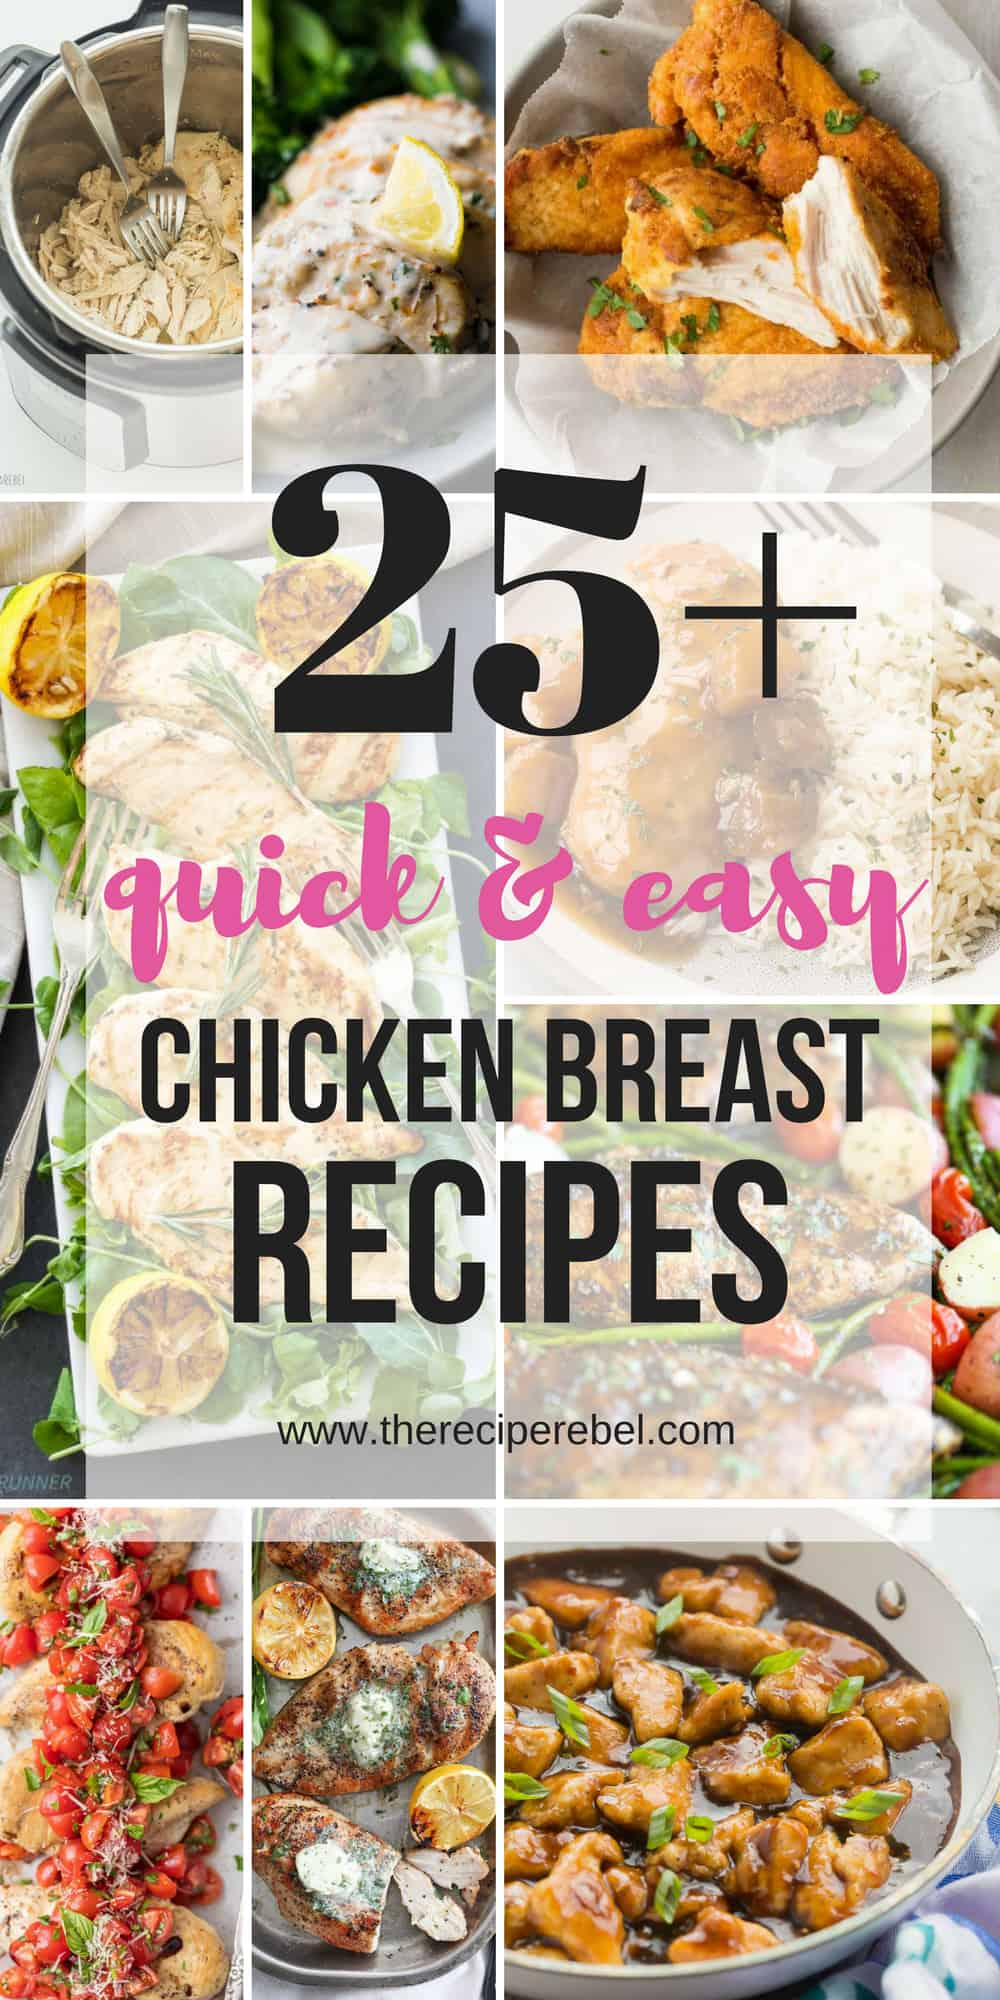 Easy Chicken Breast Recipes The Recipe Rebel Quick And Delicious